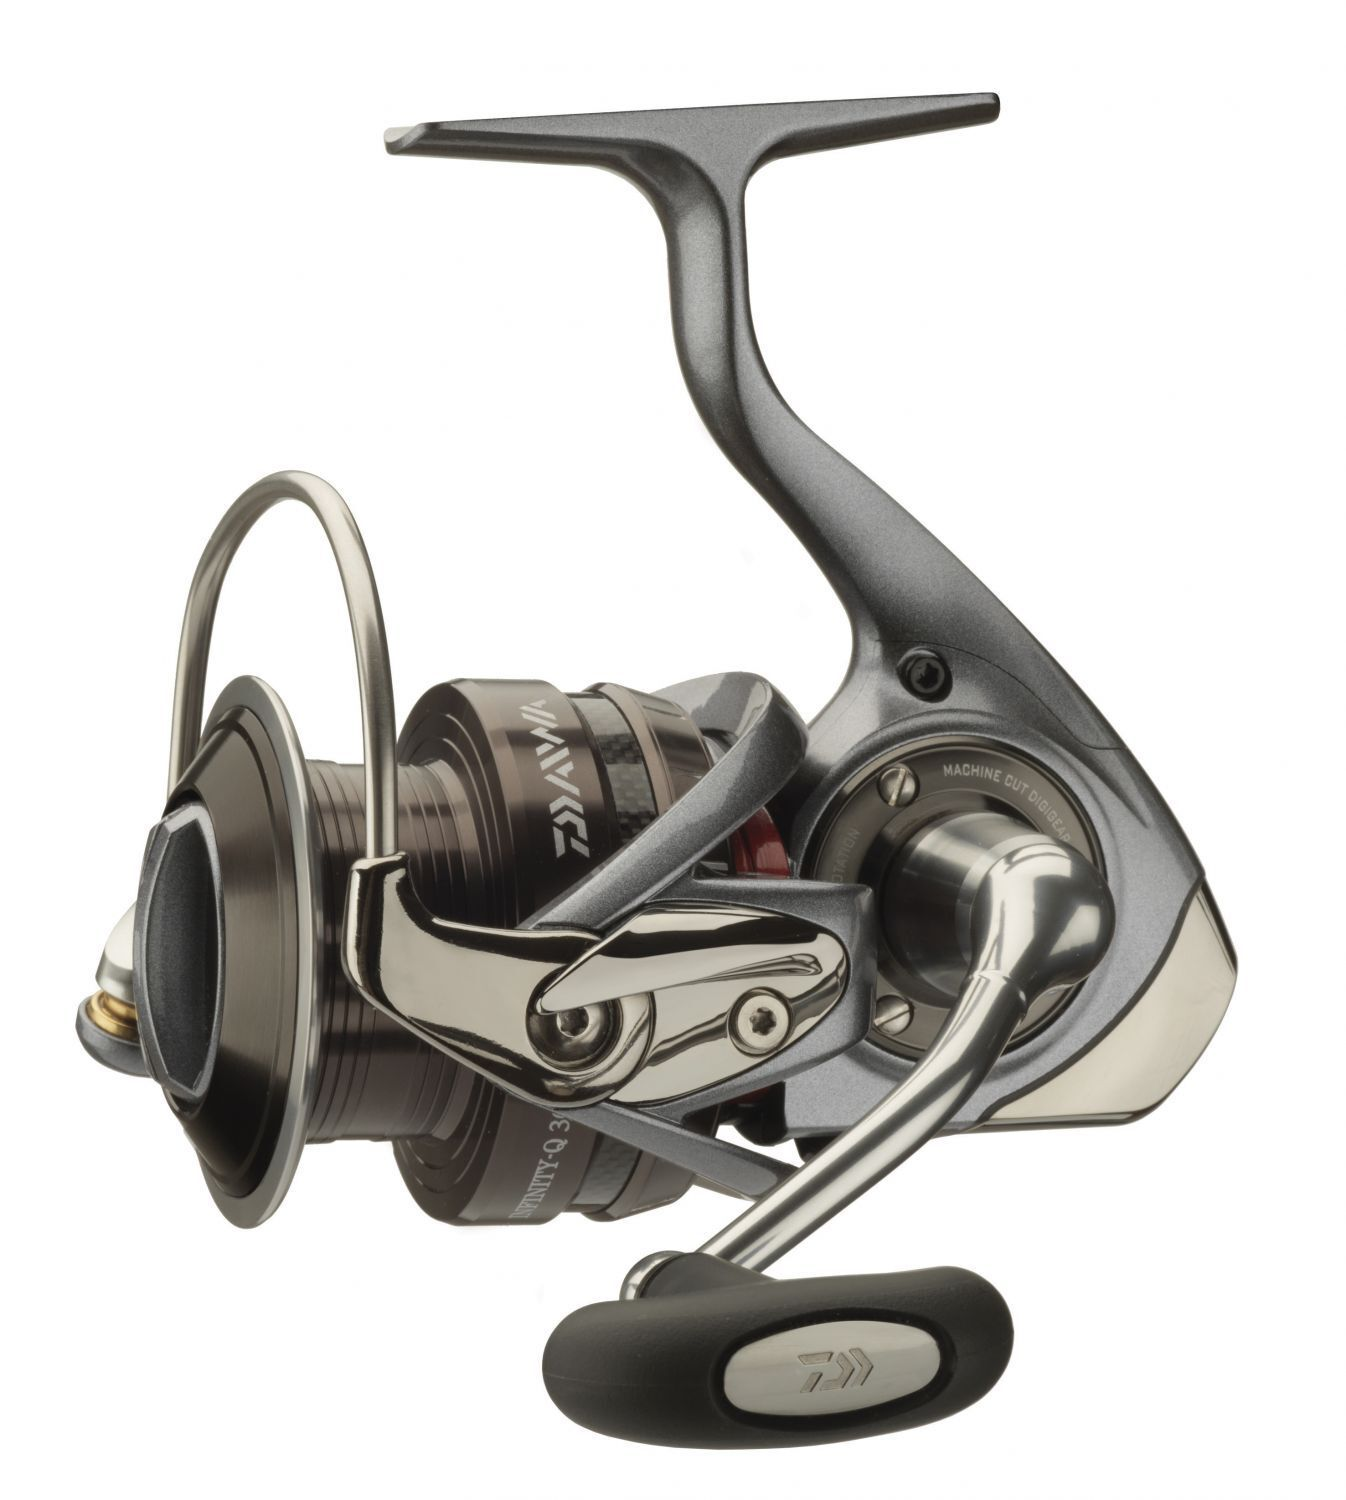 Daiwa Infinity q 2500a frontbremsrolle spinnrolle mag sealed trucha marina Hecht